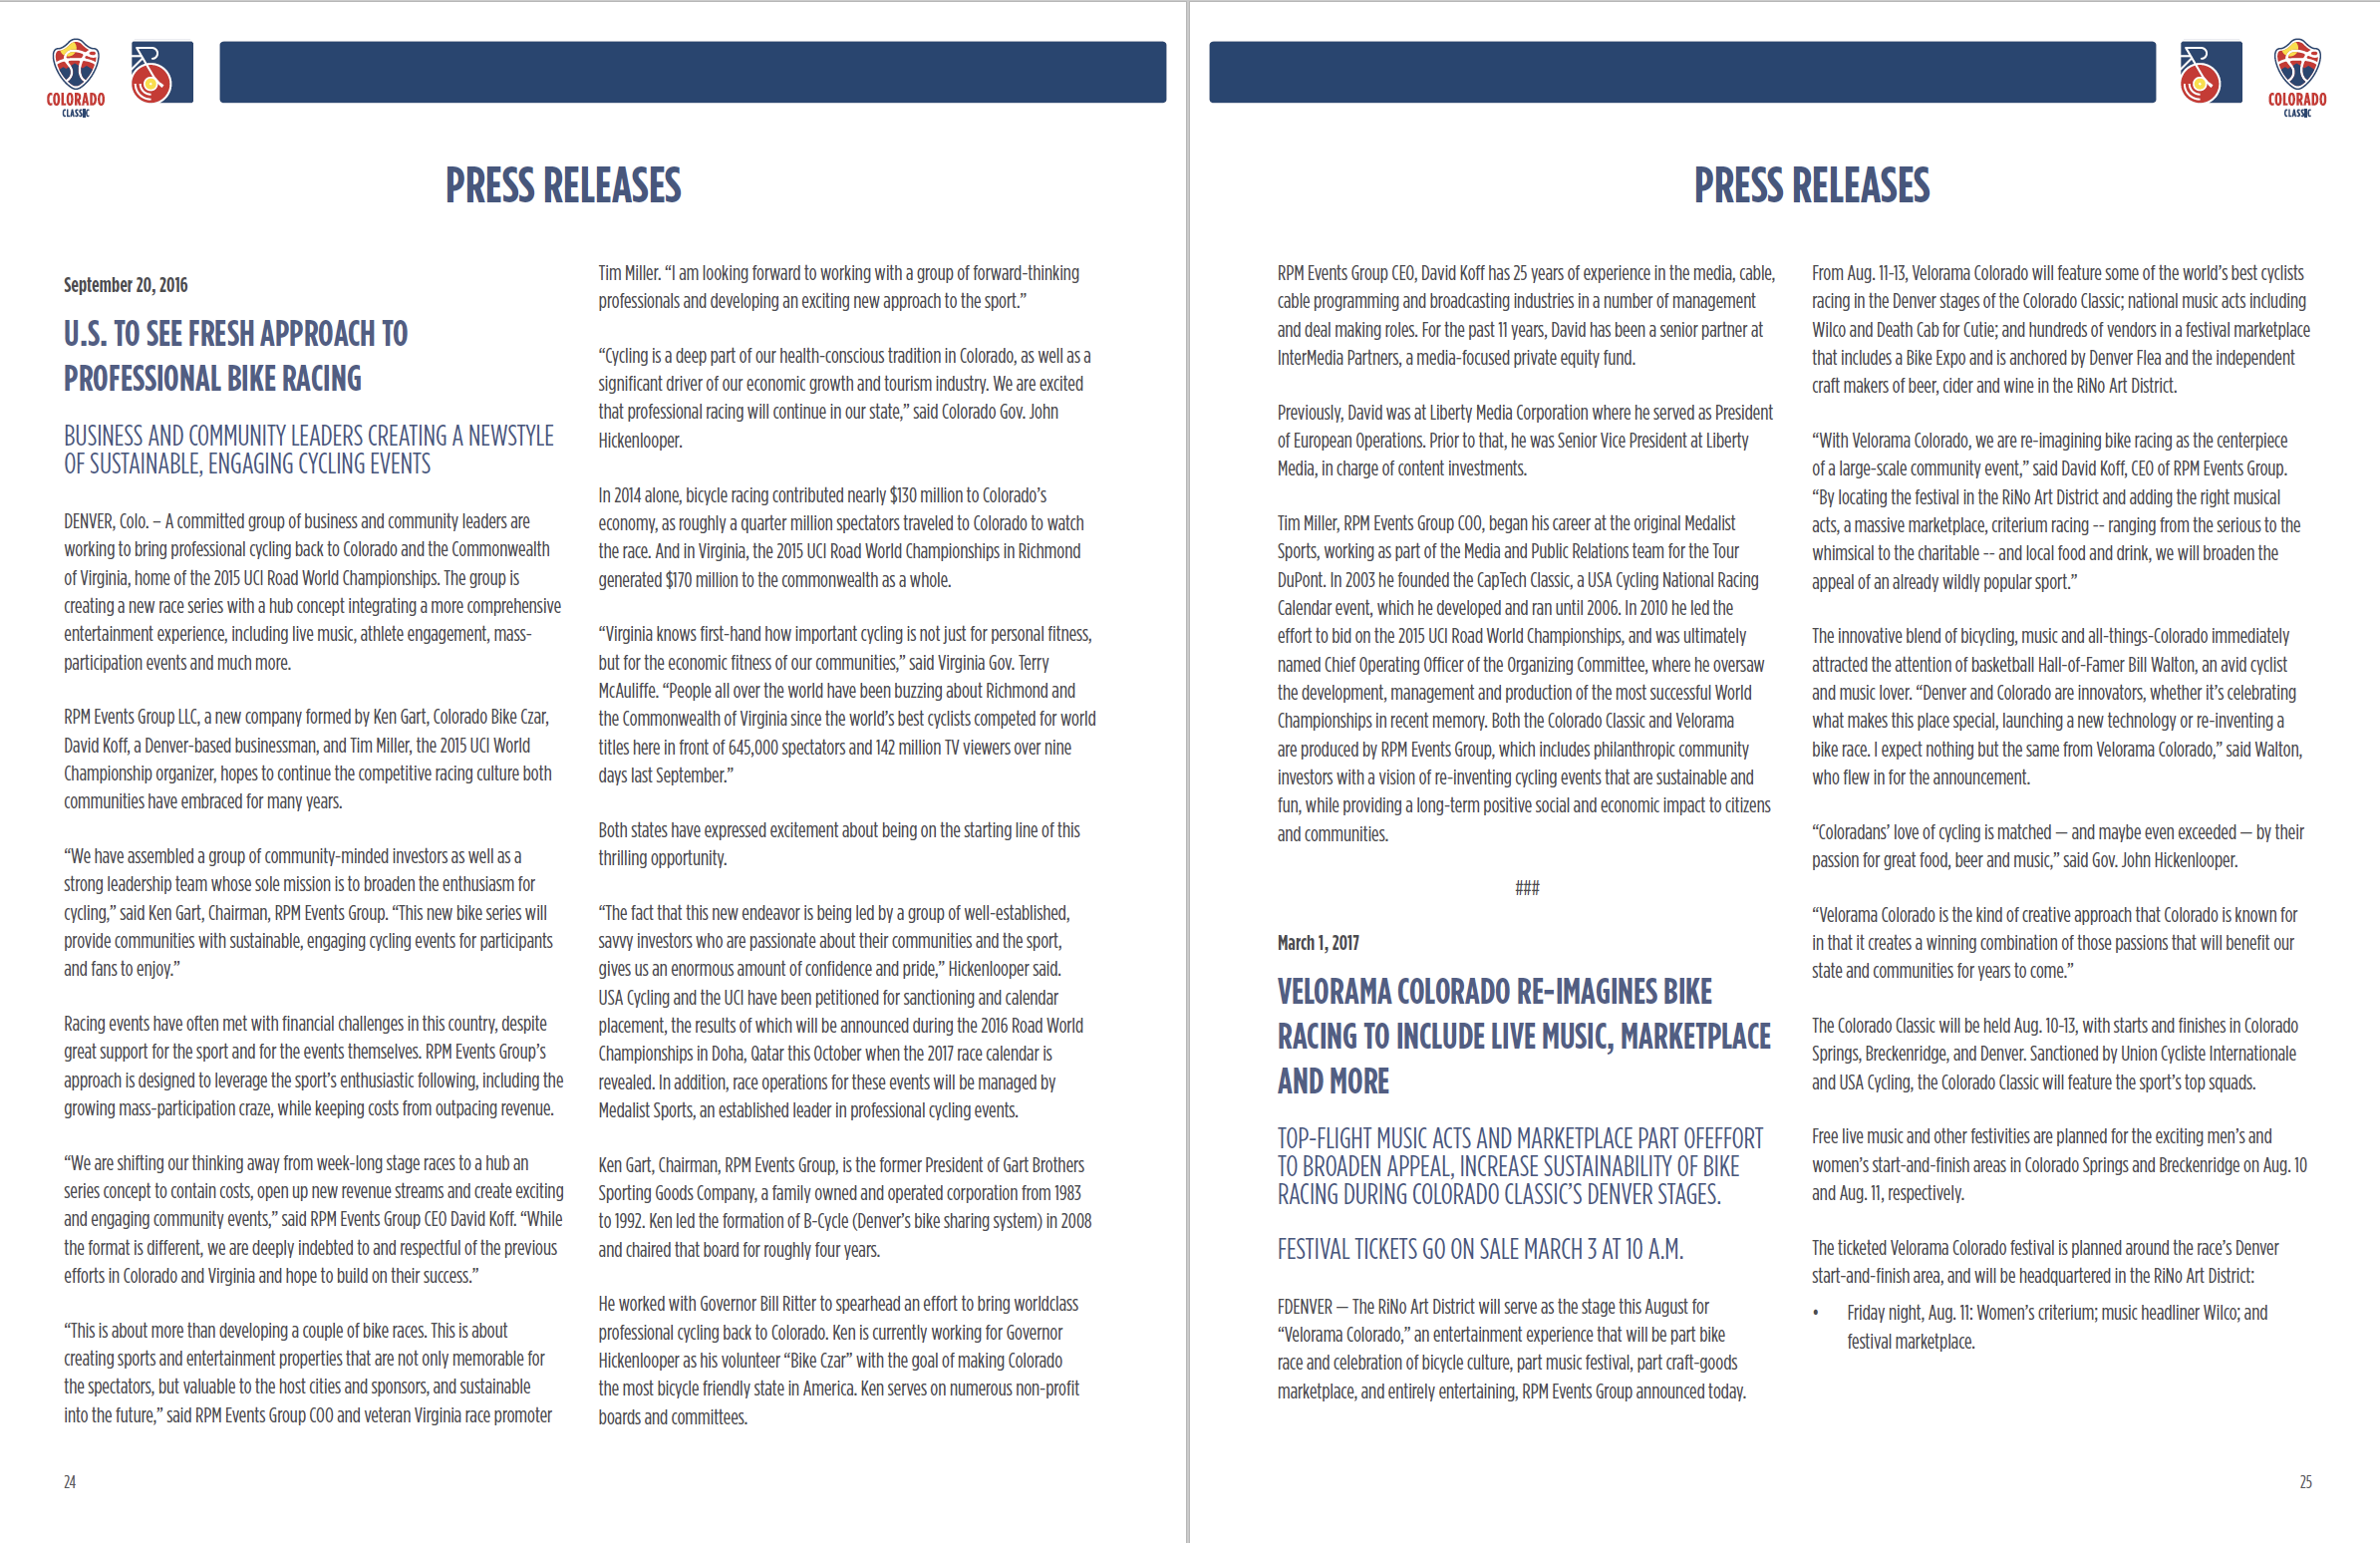 Media guide spread with text